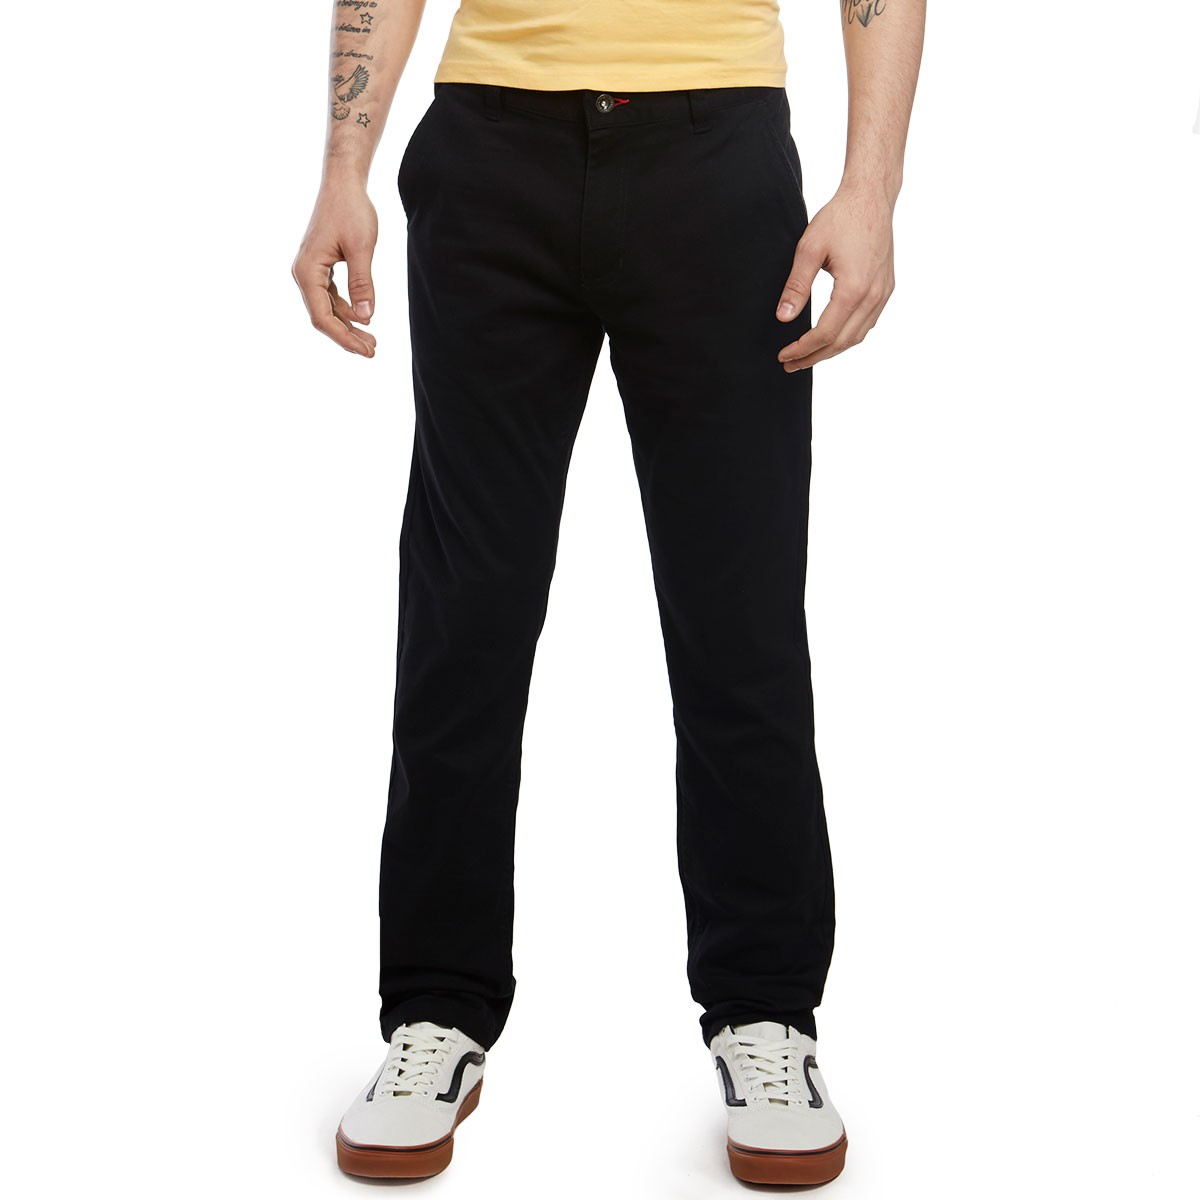 palmmetrf1.ga: black slim chinos. Slim-fit chino pant featuring tonal stitching and asymmetric back yoke seam. ITALY MORN Men's Chino Jogger Biker Pant Twill Slim Fit. by ITALY MORN. $ - $ $ 16 $ 28 90 Prime. FREE Shipping on eligible orders. Some sizes/colors are Prime eligible.